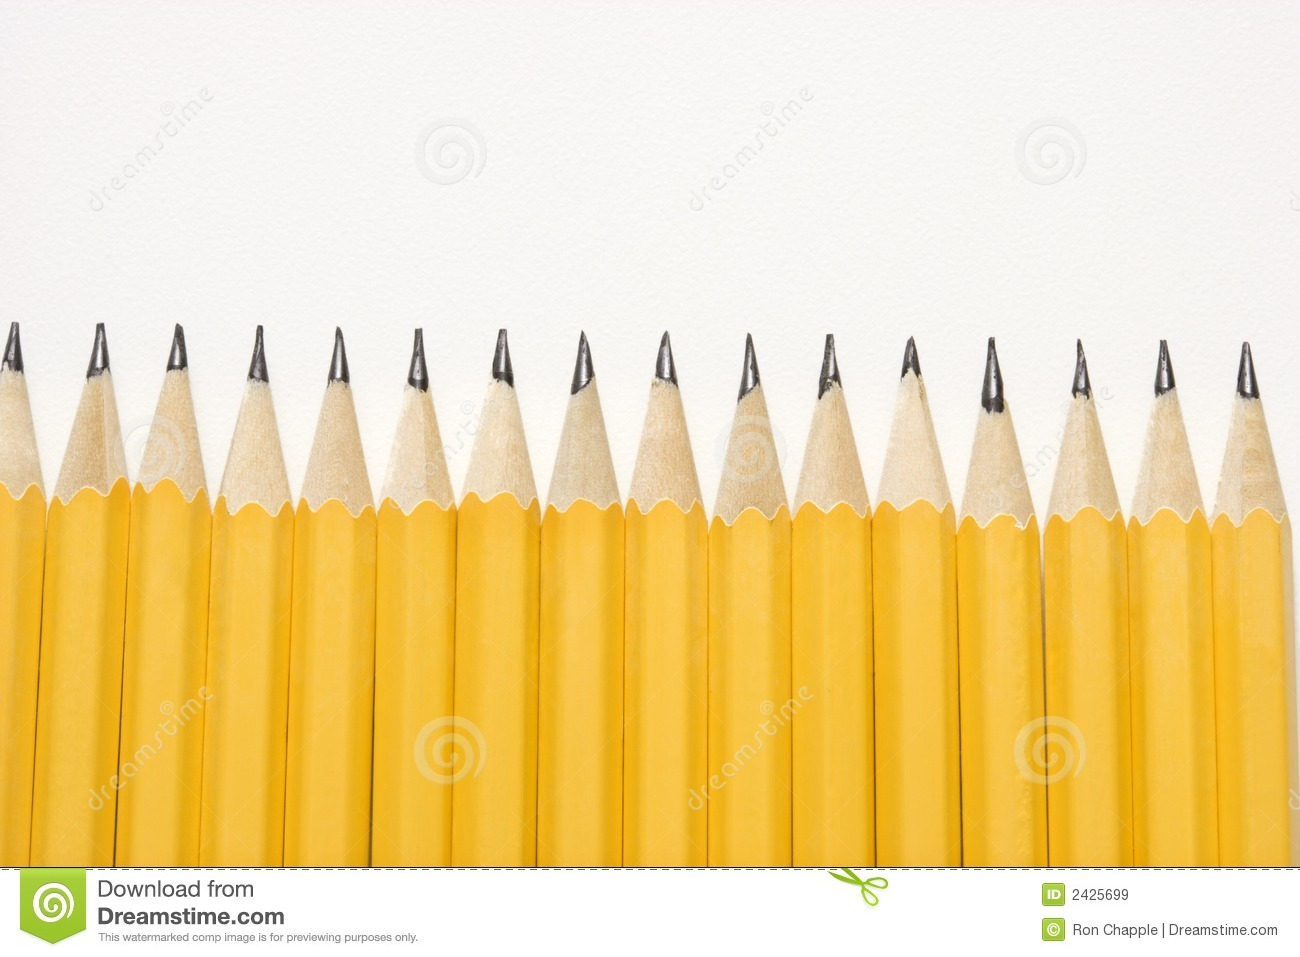 Sharp Pencils Lined Up In An Even Row